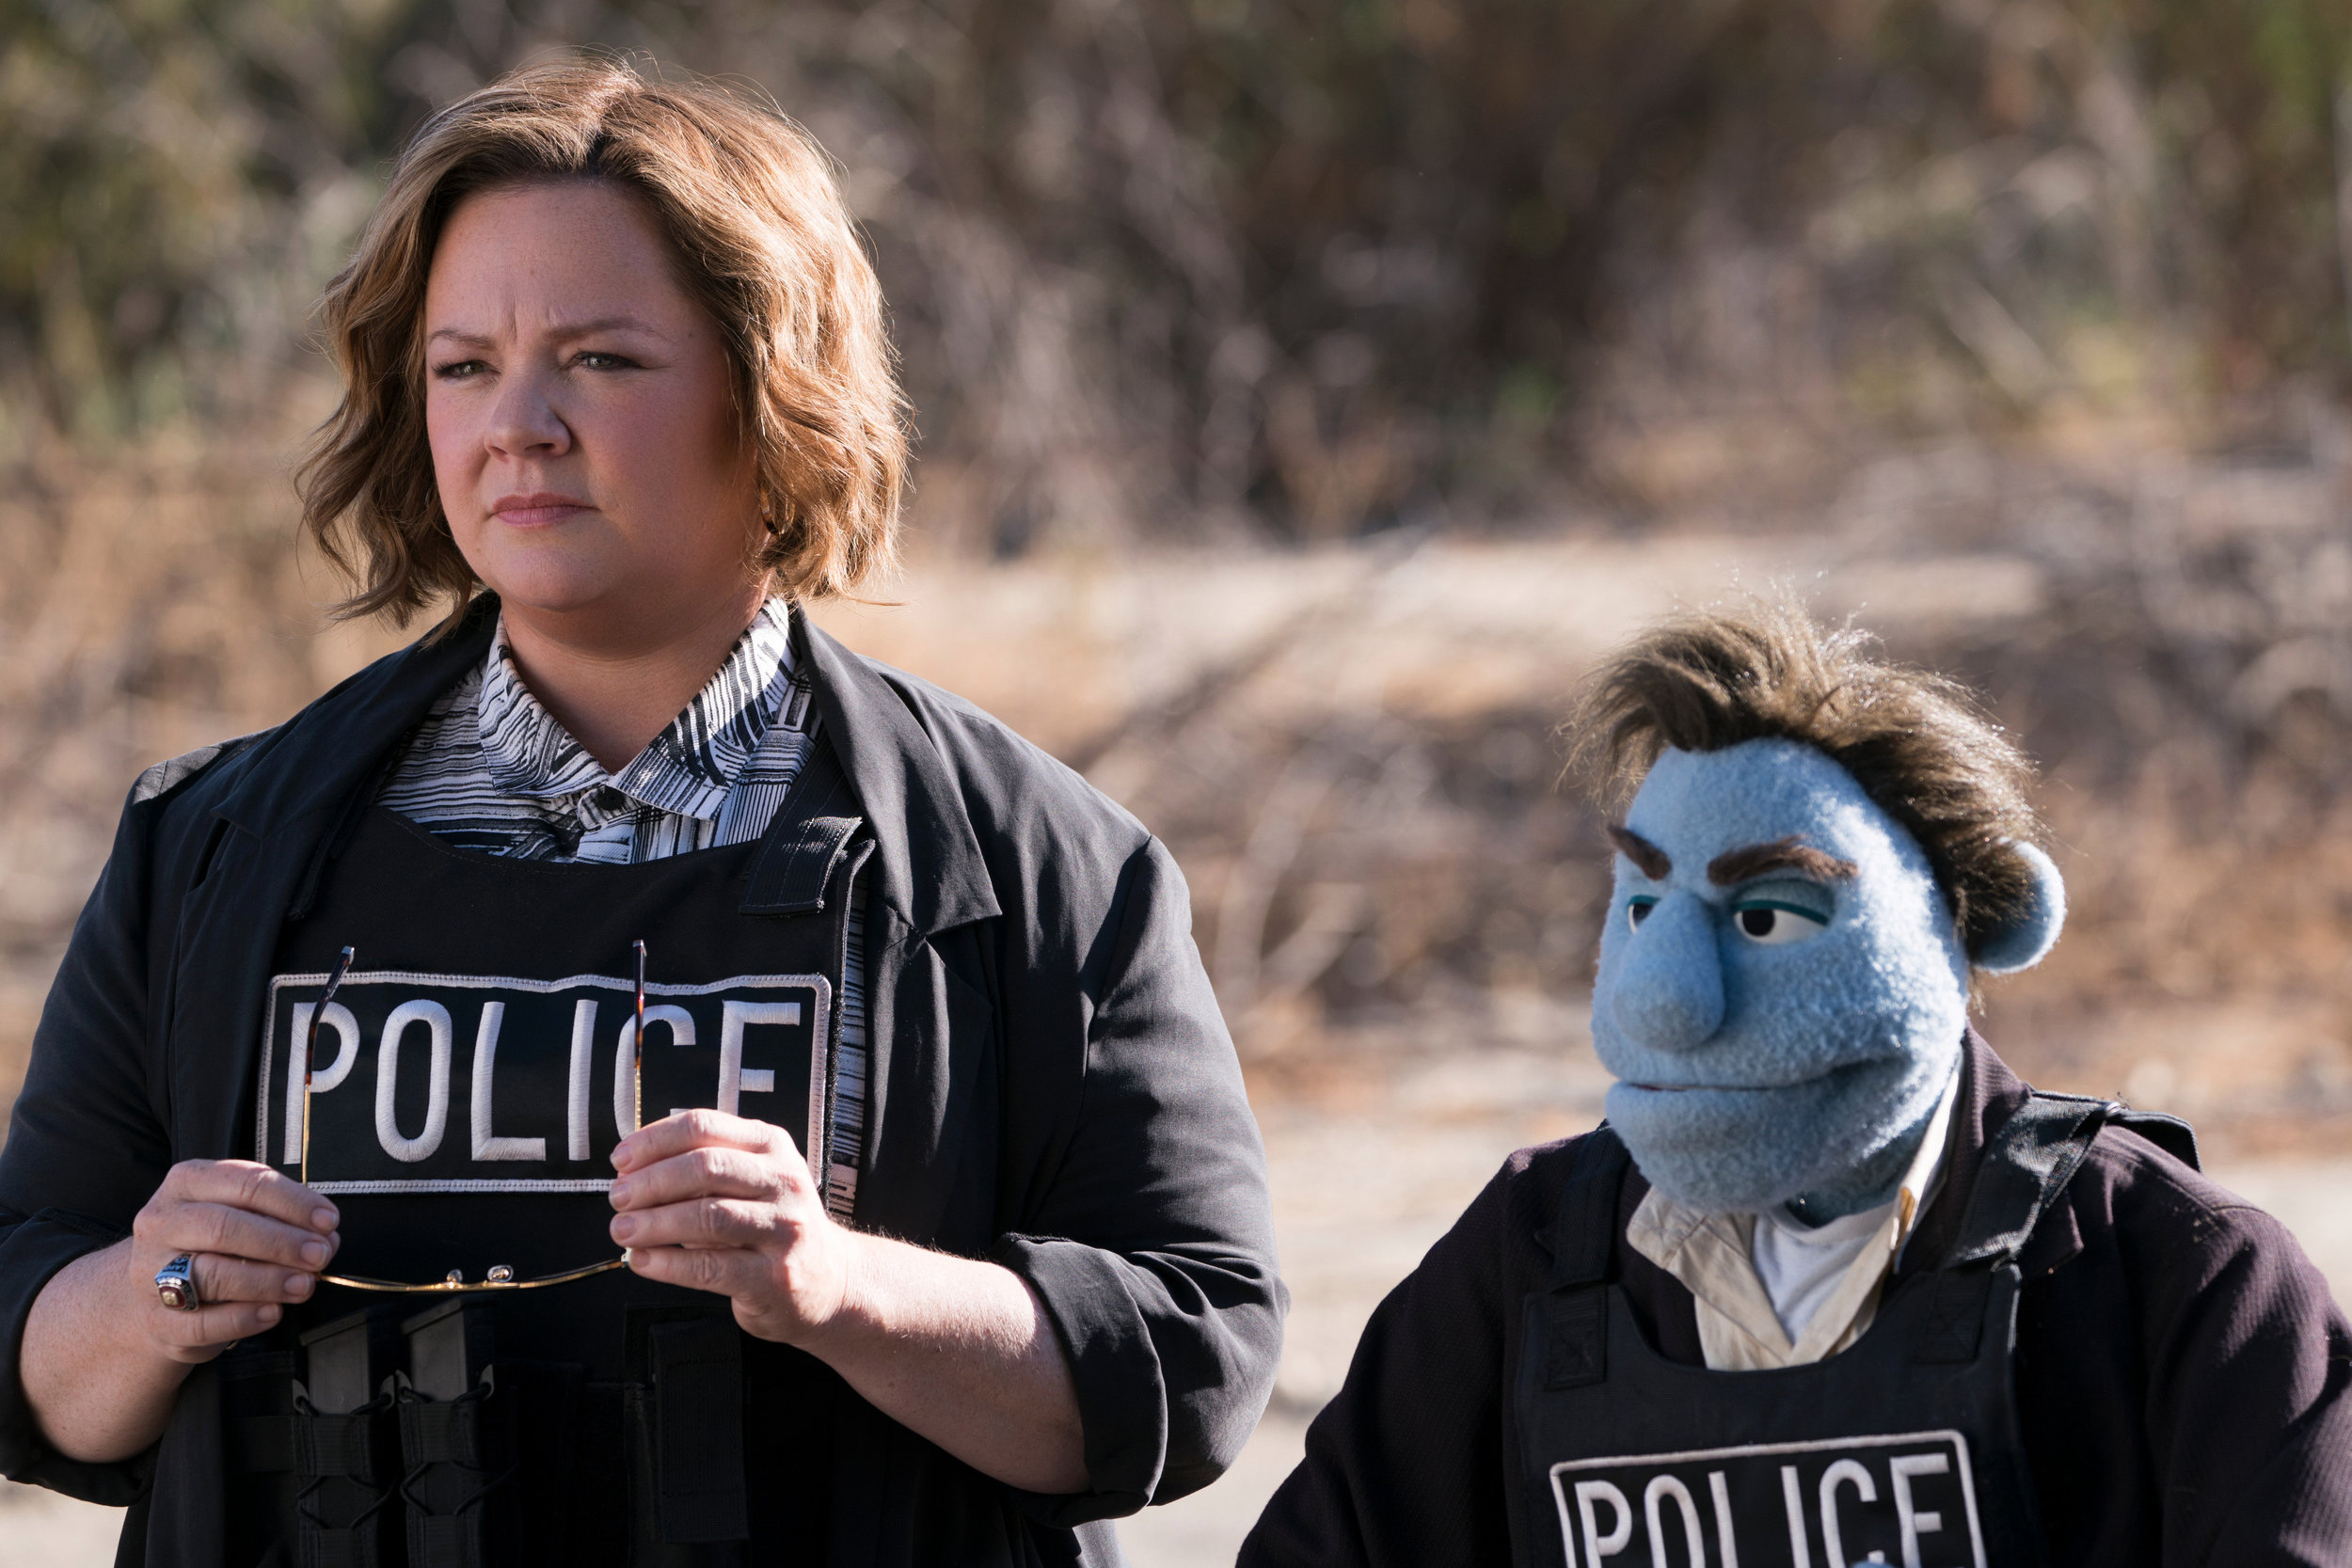 Melissa McCarthy will likely get an Oscar nomination tomorrow, but this puppet movie received some of the most savage reviews of last year